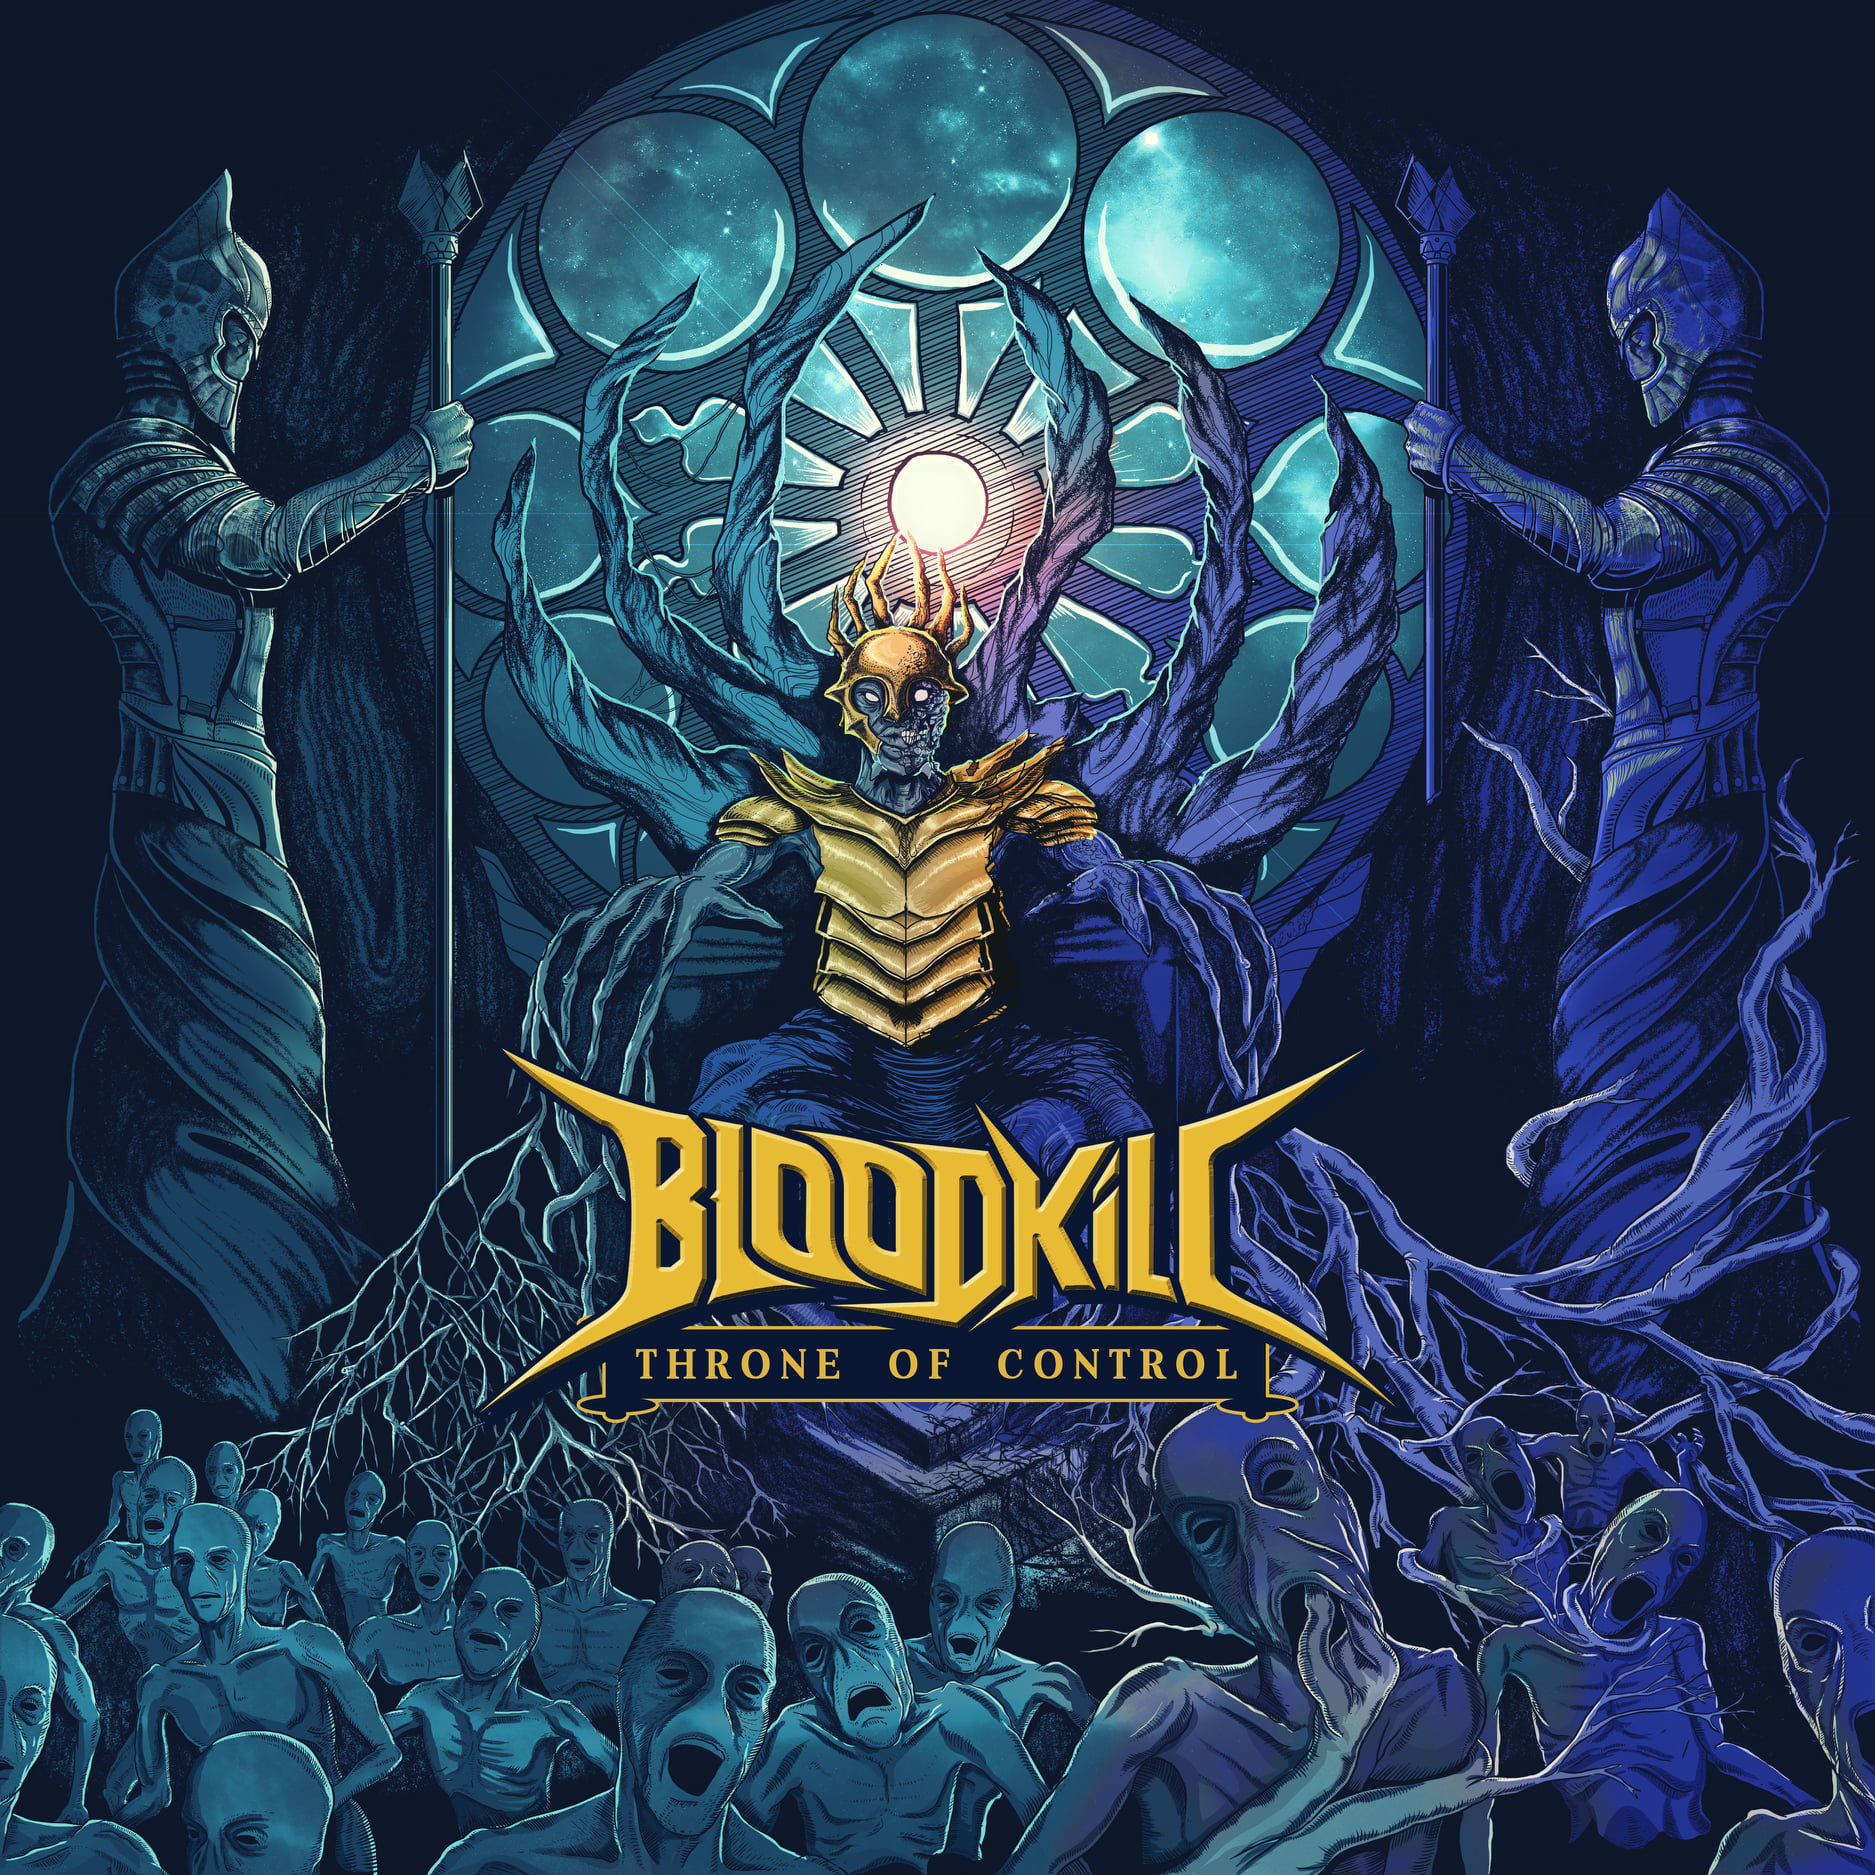 bloodkill throne of control album cover artwork gaurav basu acid toad